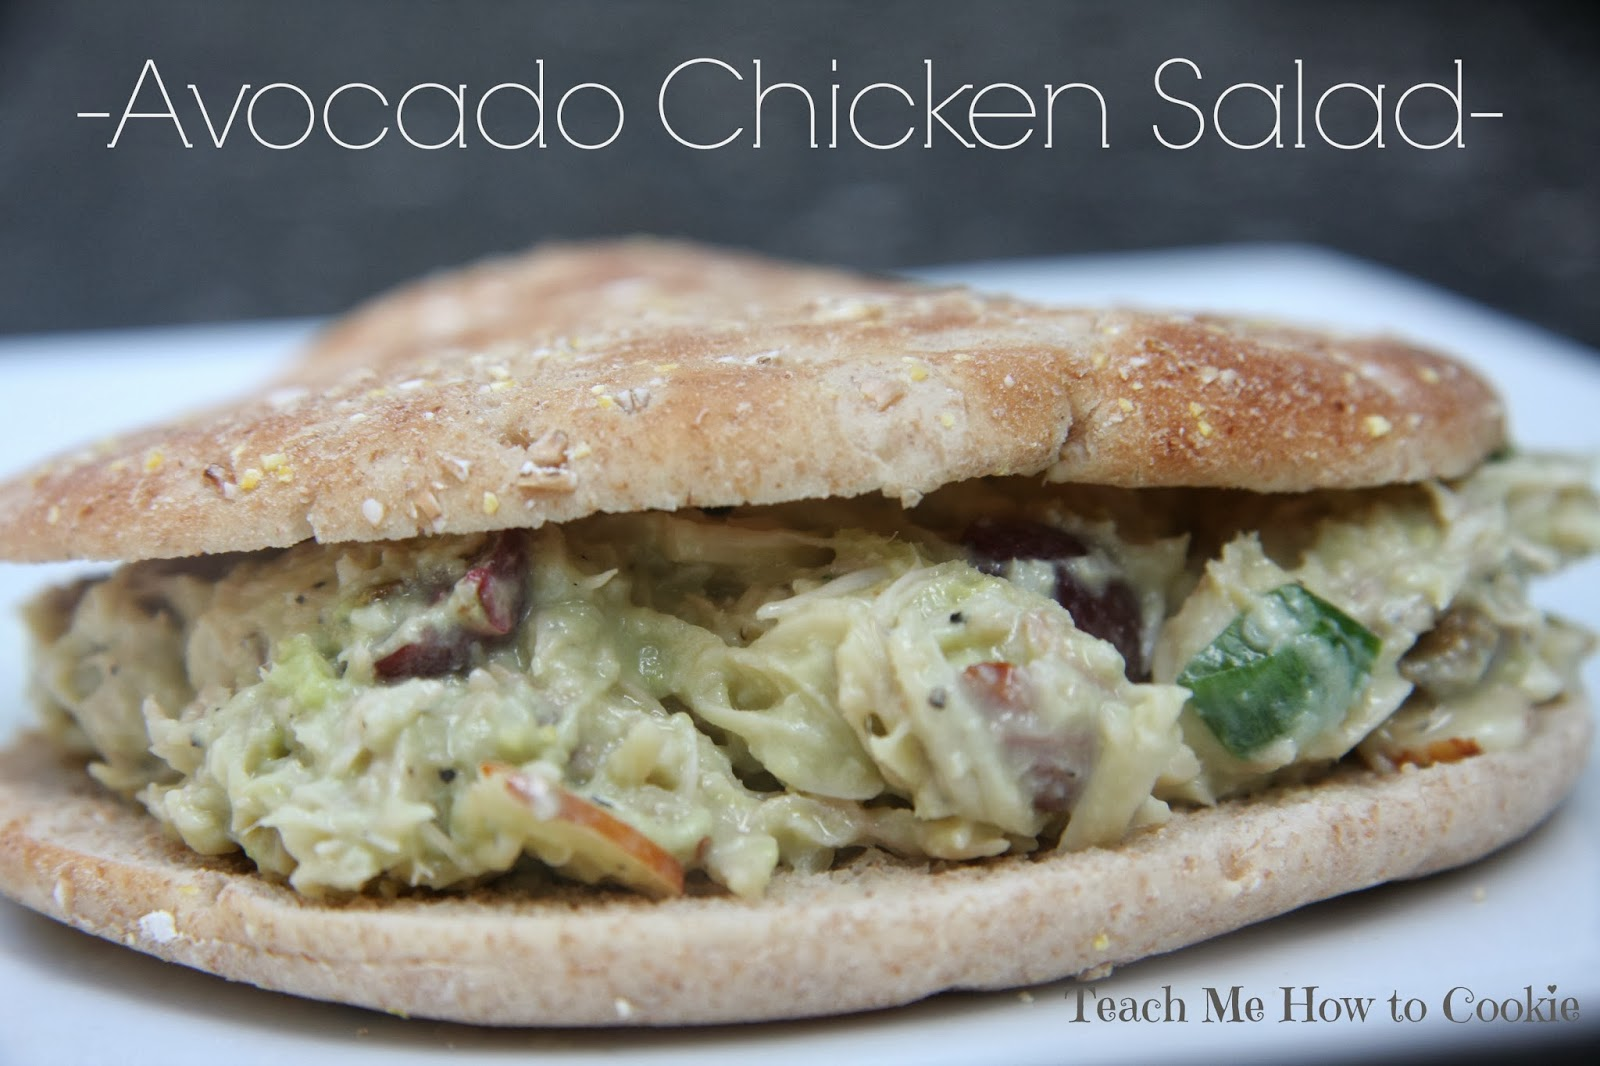 Teach Me How To Cookie: Avocado Chicken Salad